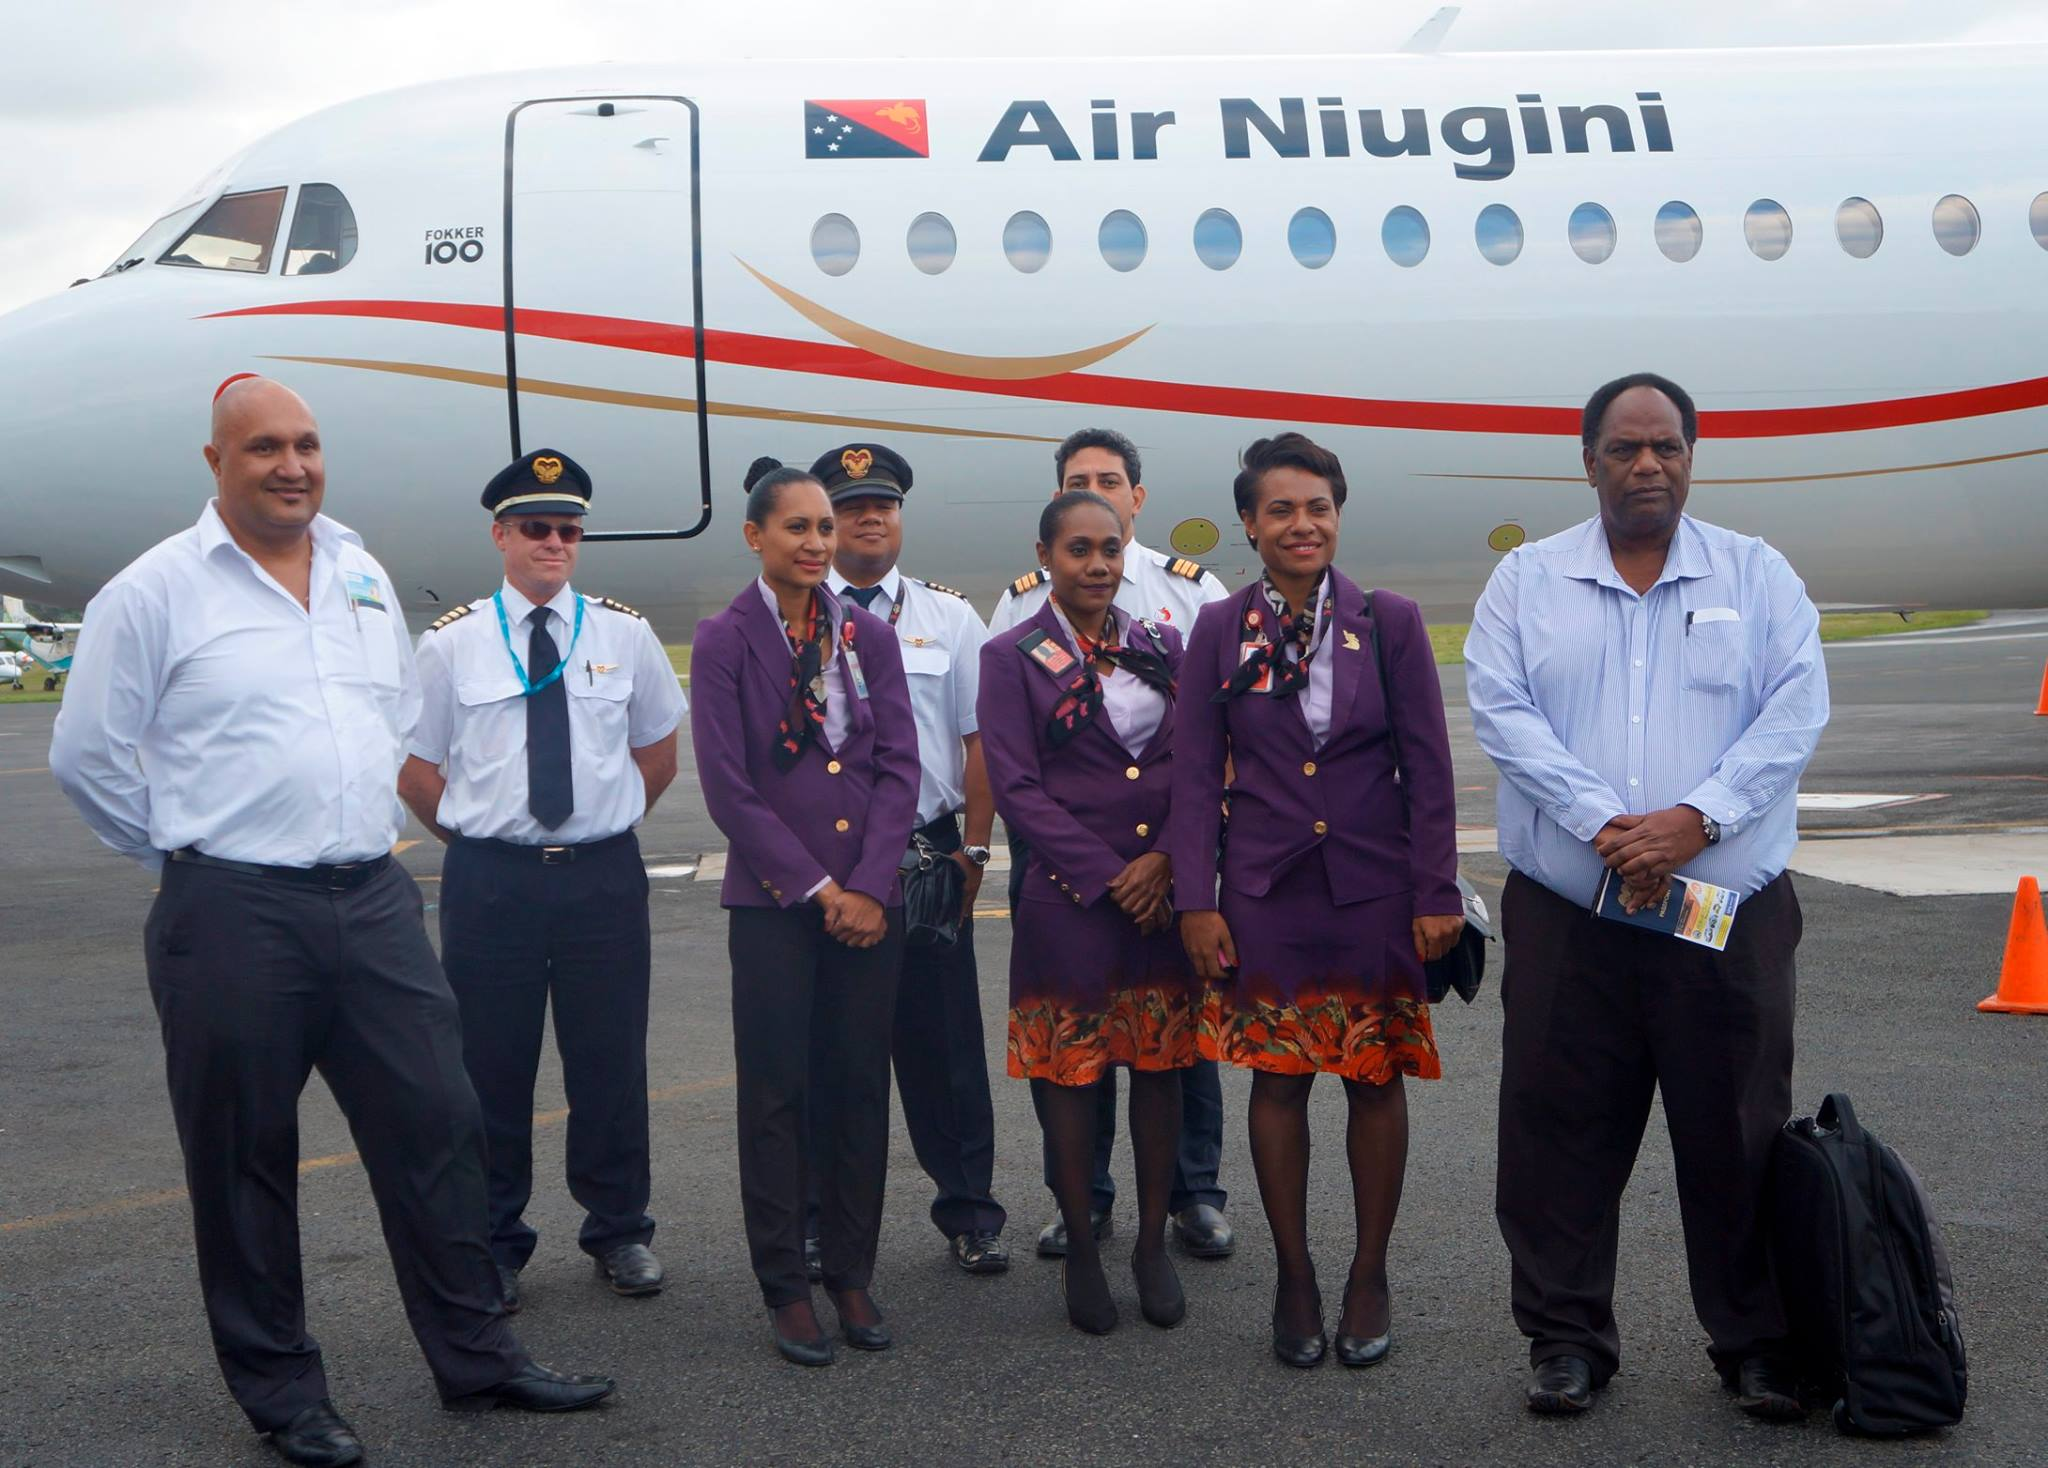 Air Niugini.